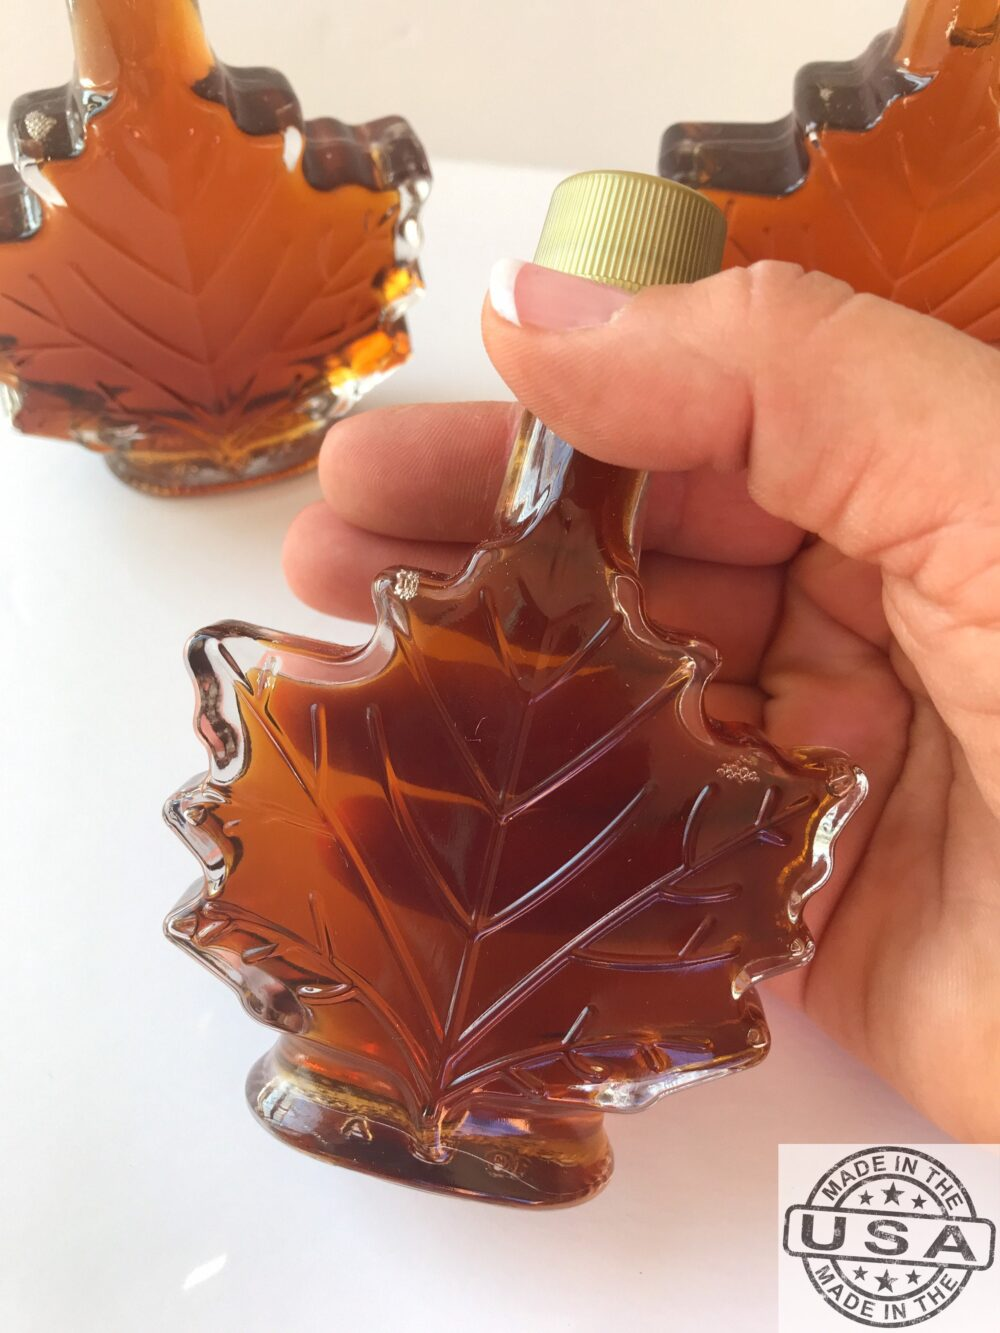 50Ml, Organic Maple Favors, Wedding Favors, Maple Syrup, Fall Favors, Rustic Favors, Pure Syrup, Love Is Sweet, Bridal Shower Favors, Vegans